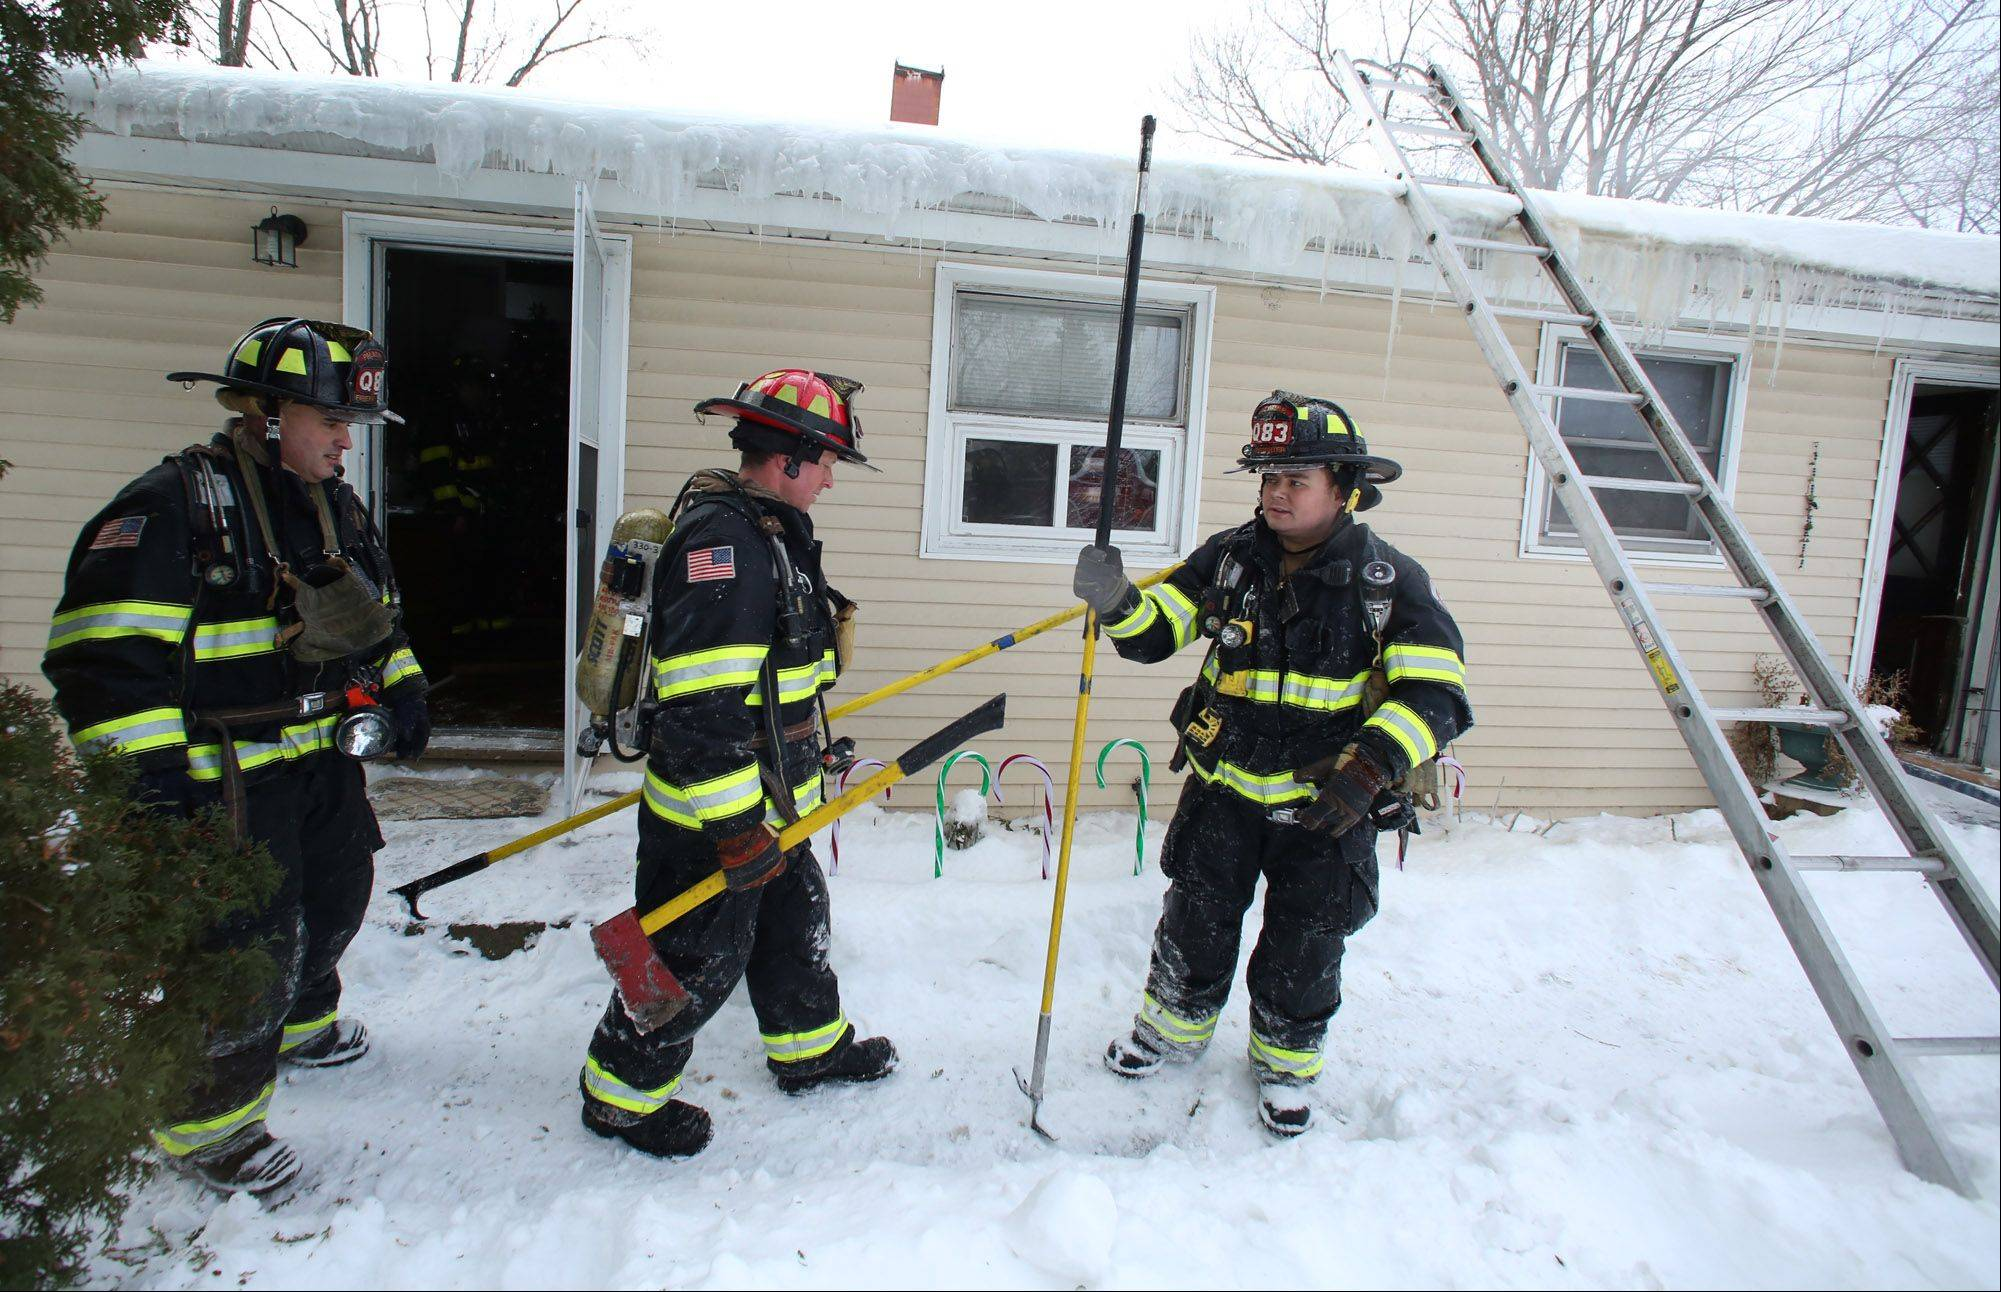 Firefighters responded to a house fire Tuesday afternoon on the 1600 block of Yale Avenue in Arlington Heights.